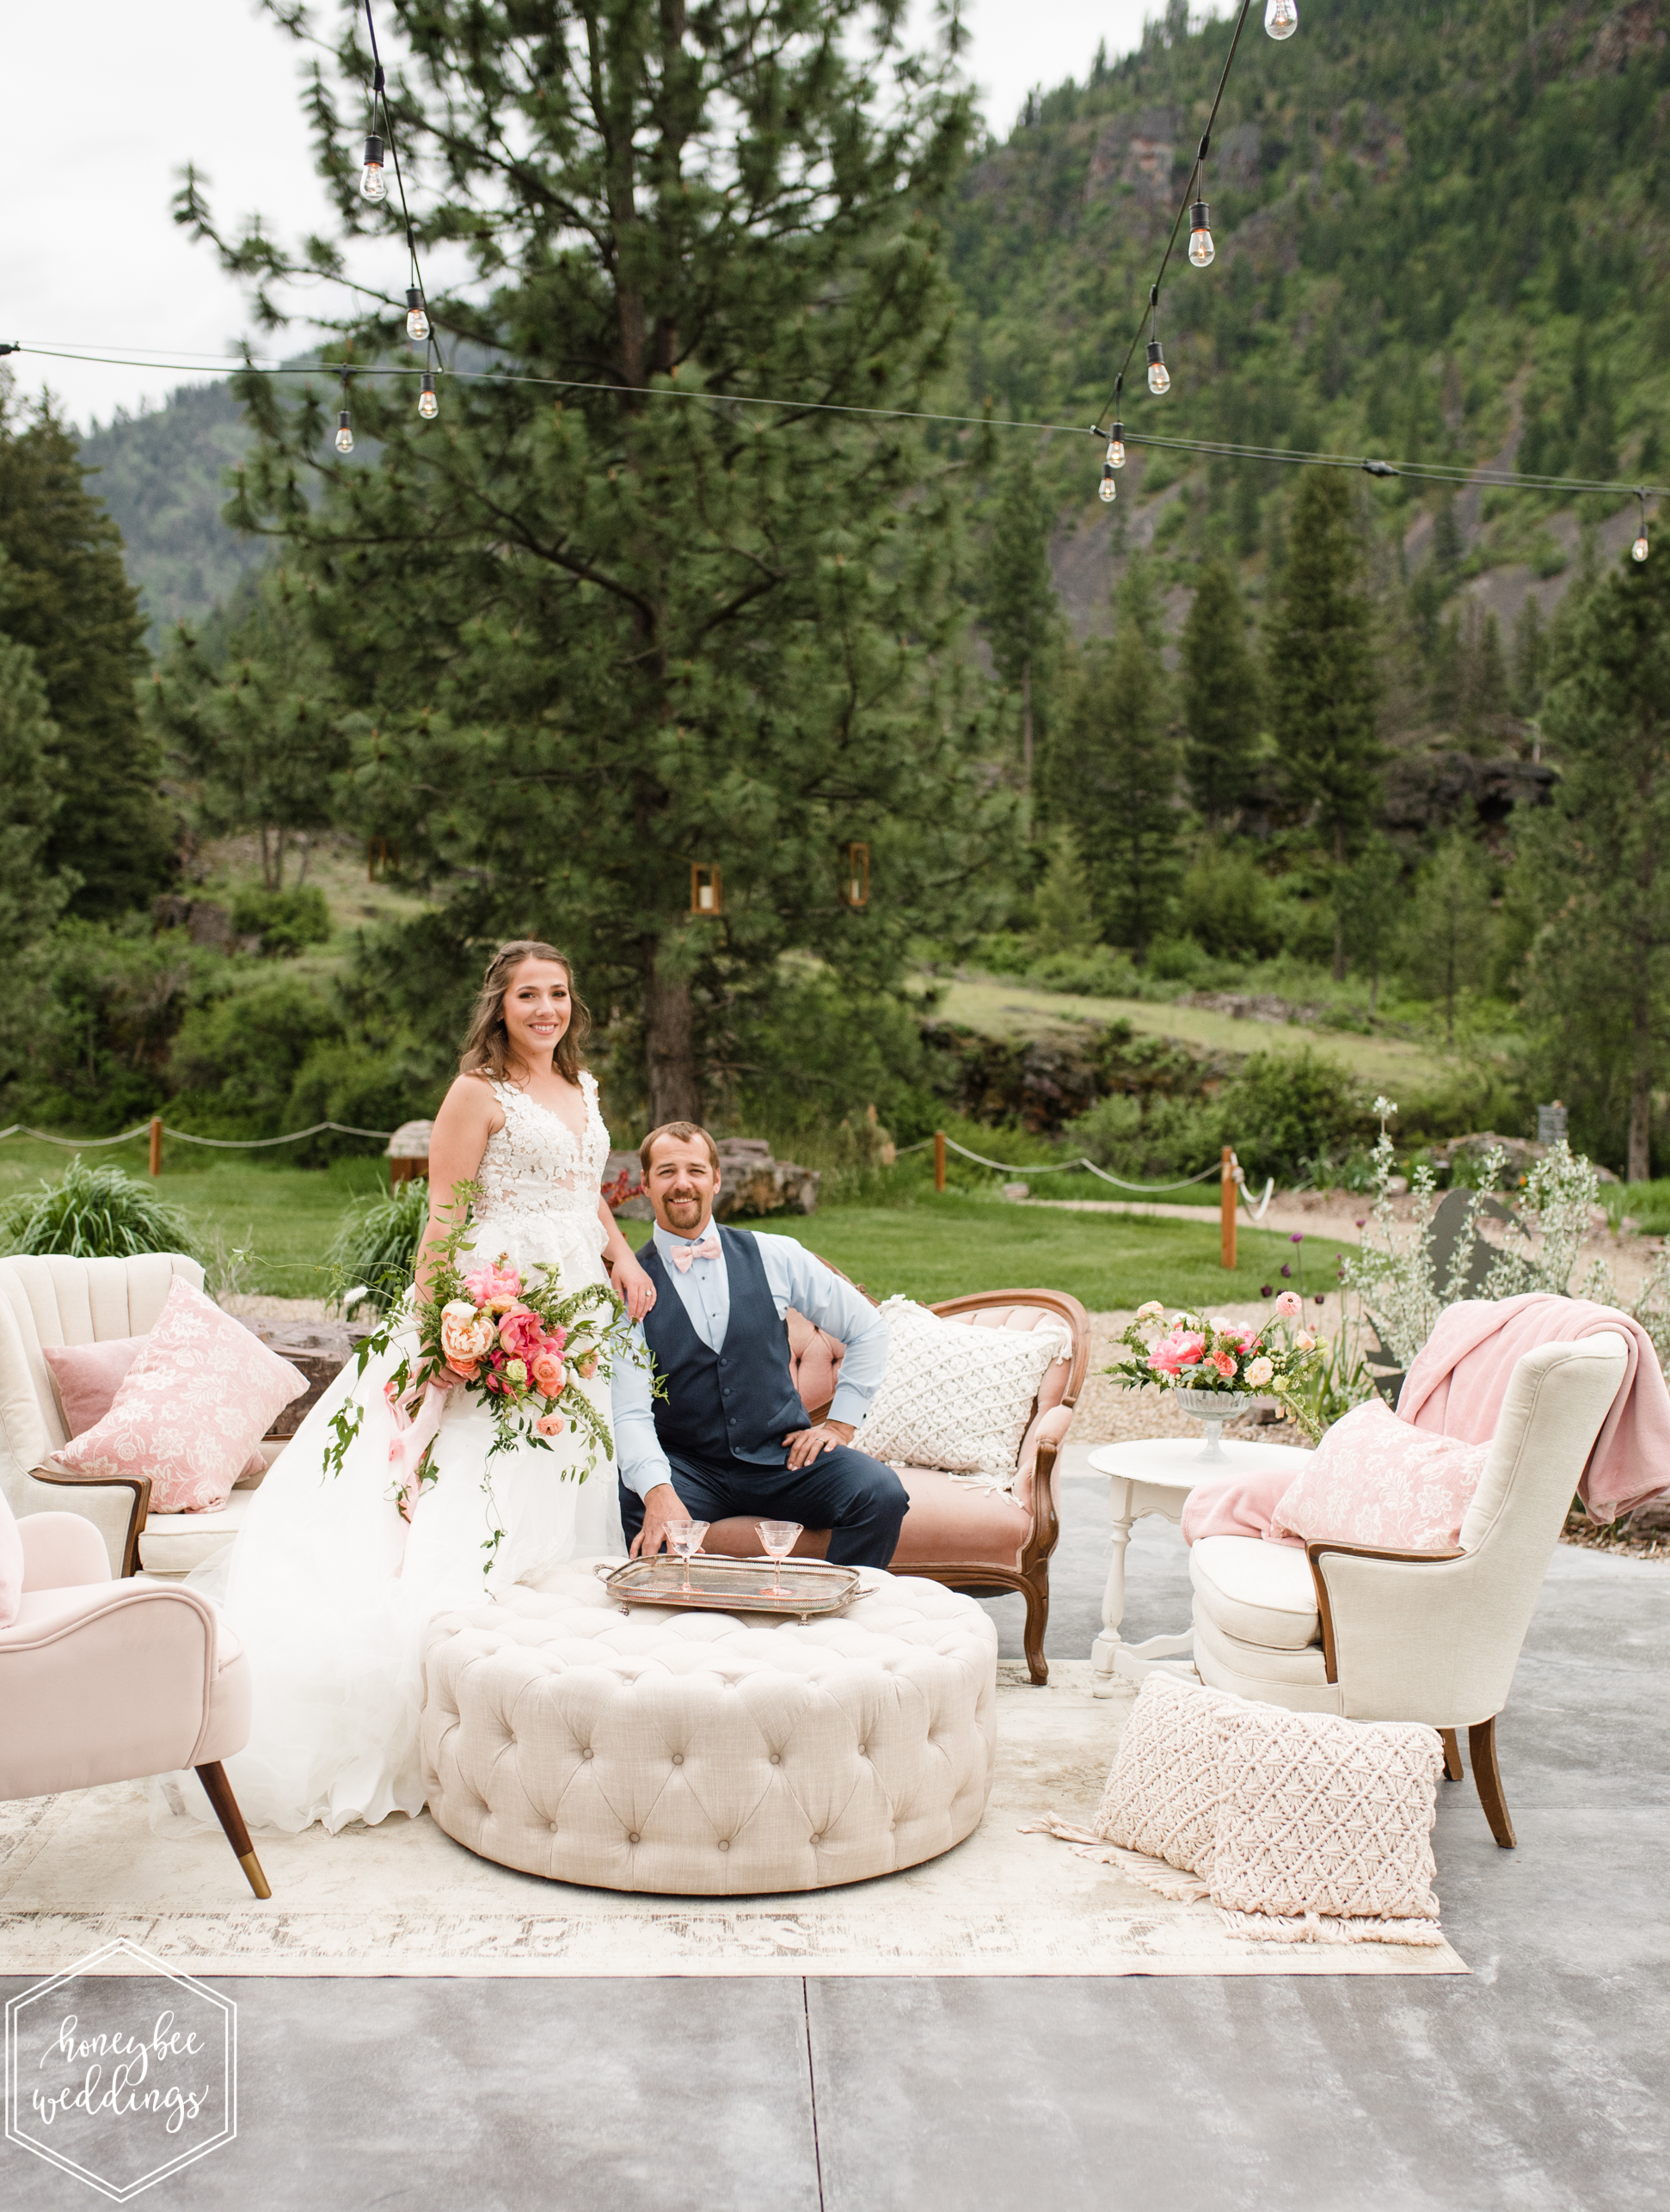 082Coral Mountain Wedding at White Raven_Honeybee Weddings_May 23, 2019-225.jpg